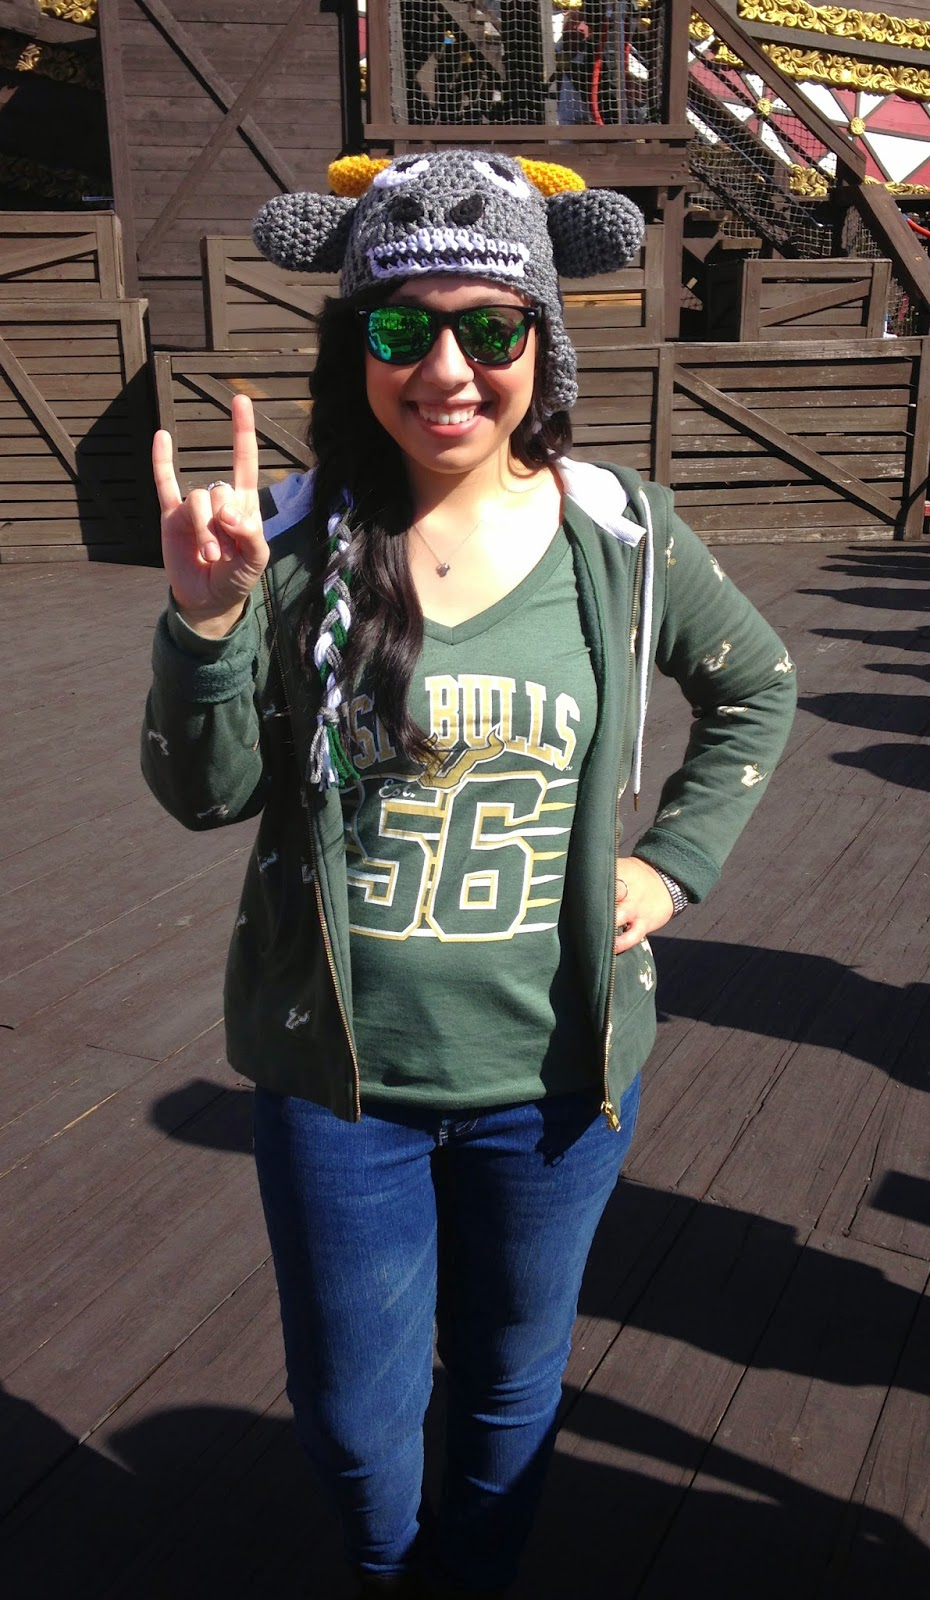 USF Bulls fan fashion